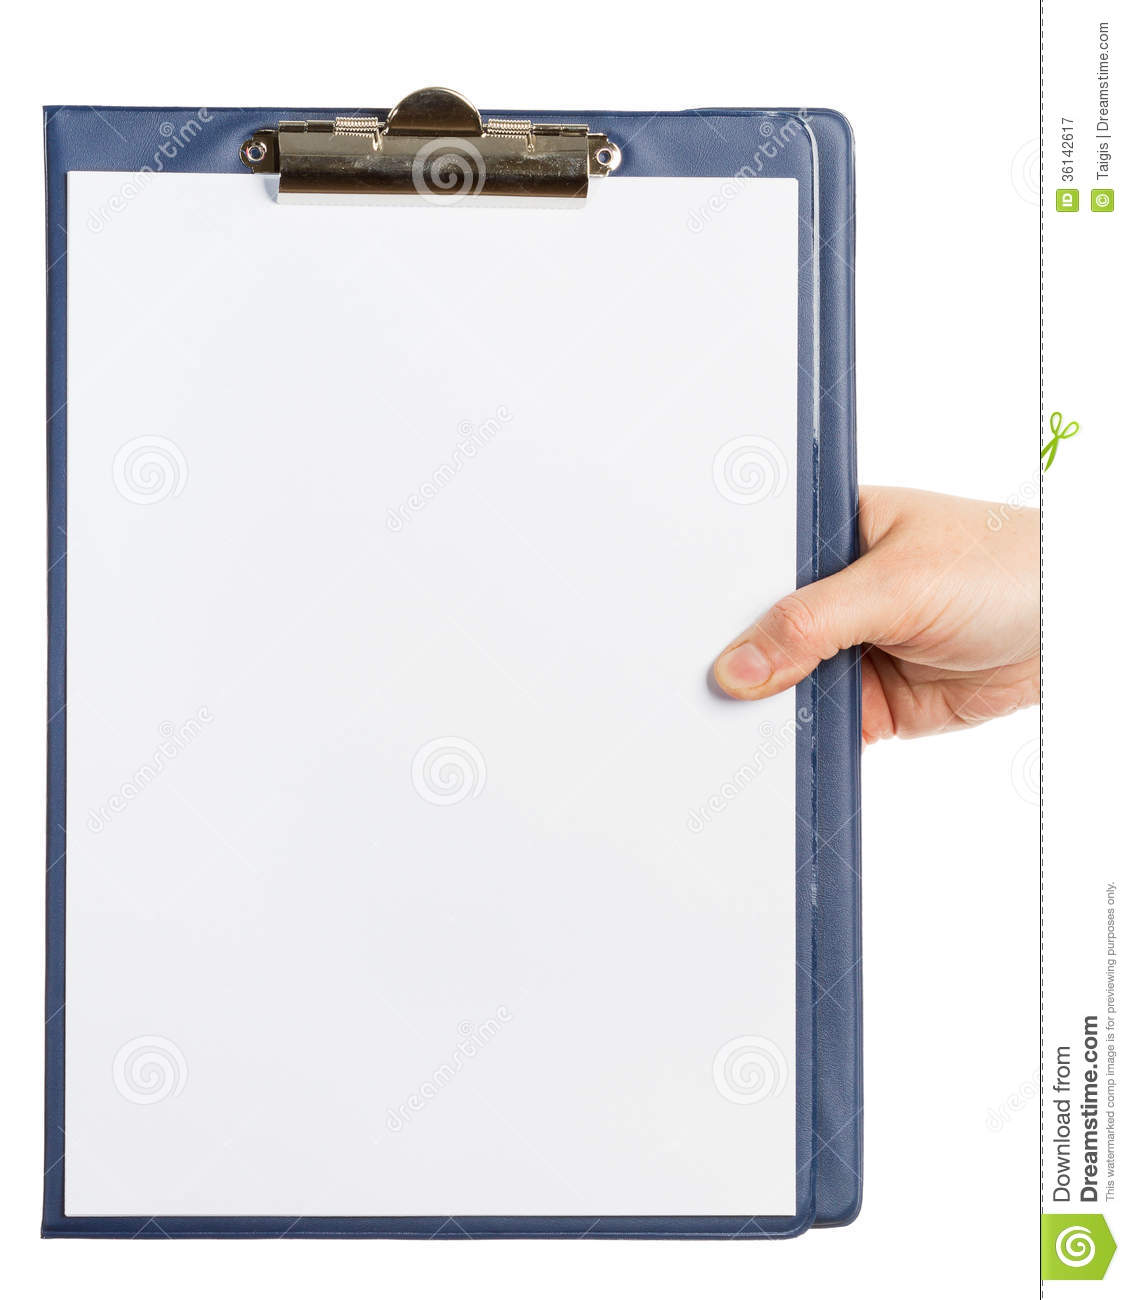 hand holding clipboard royalty free stock photography